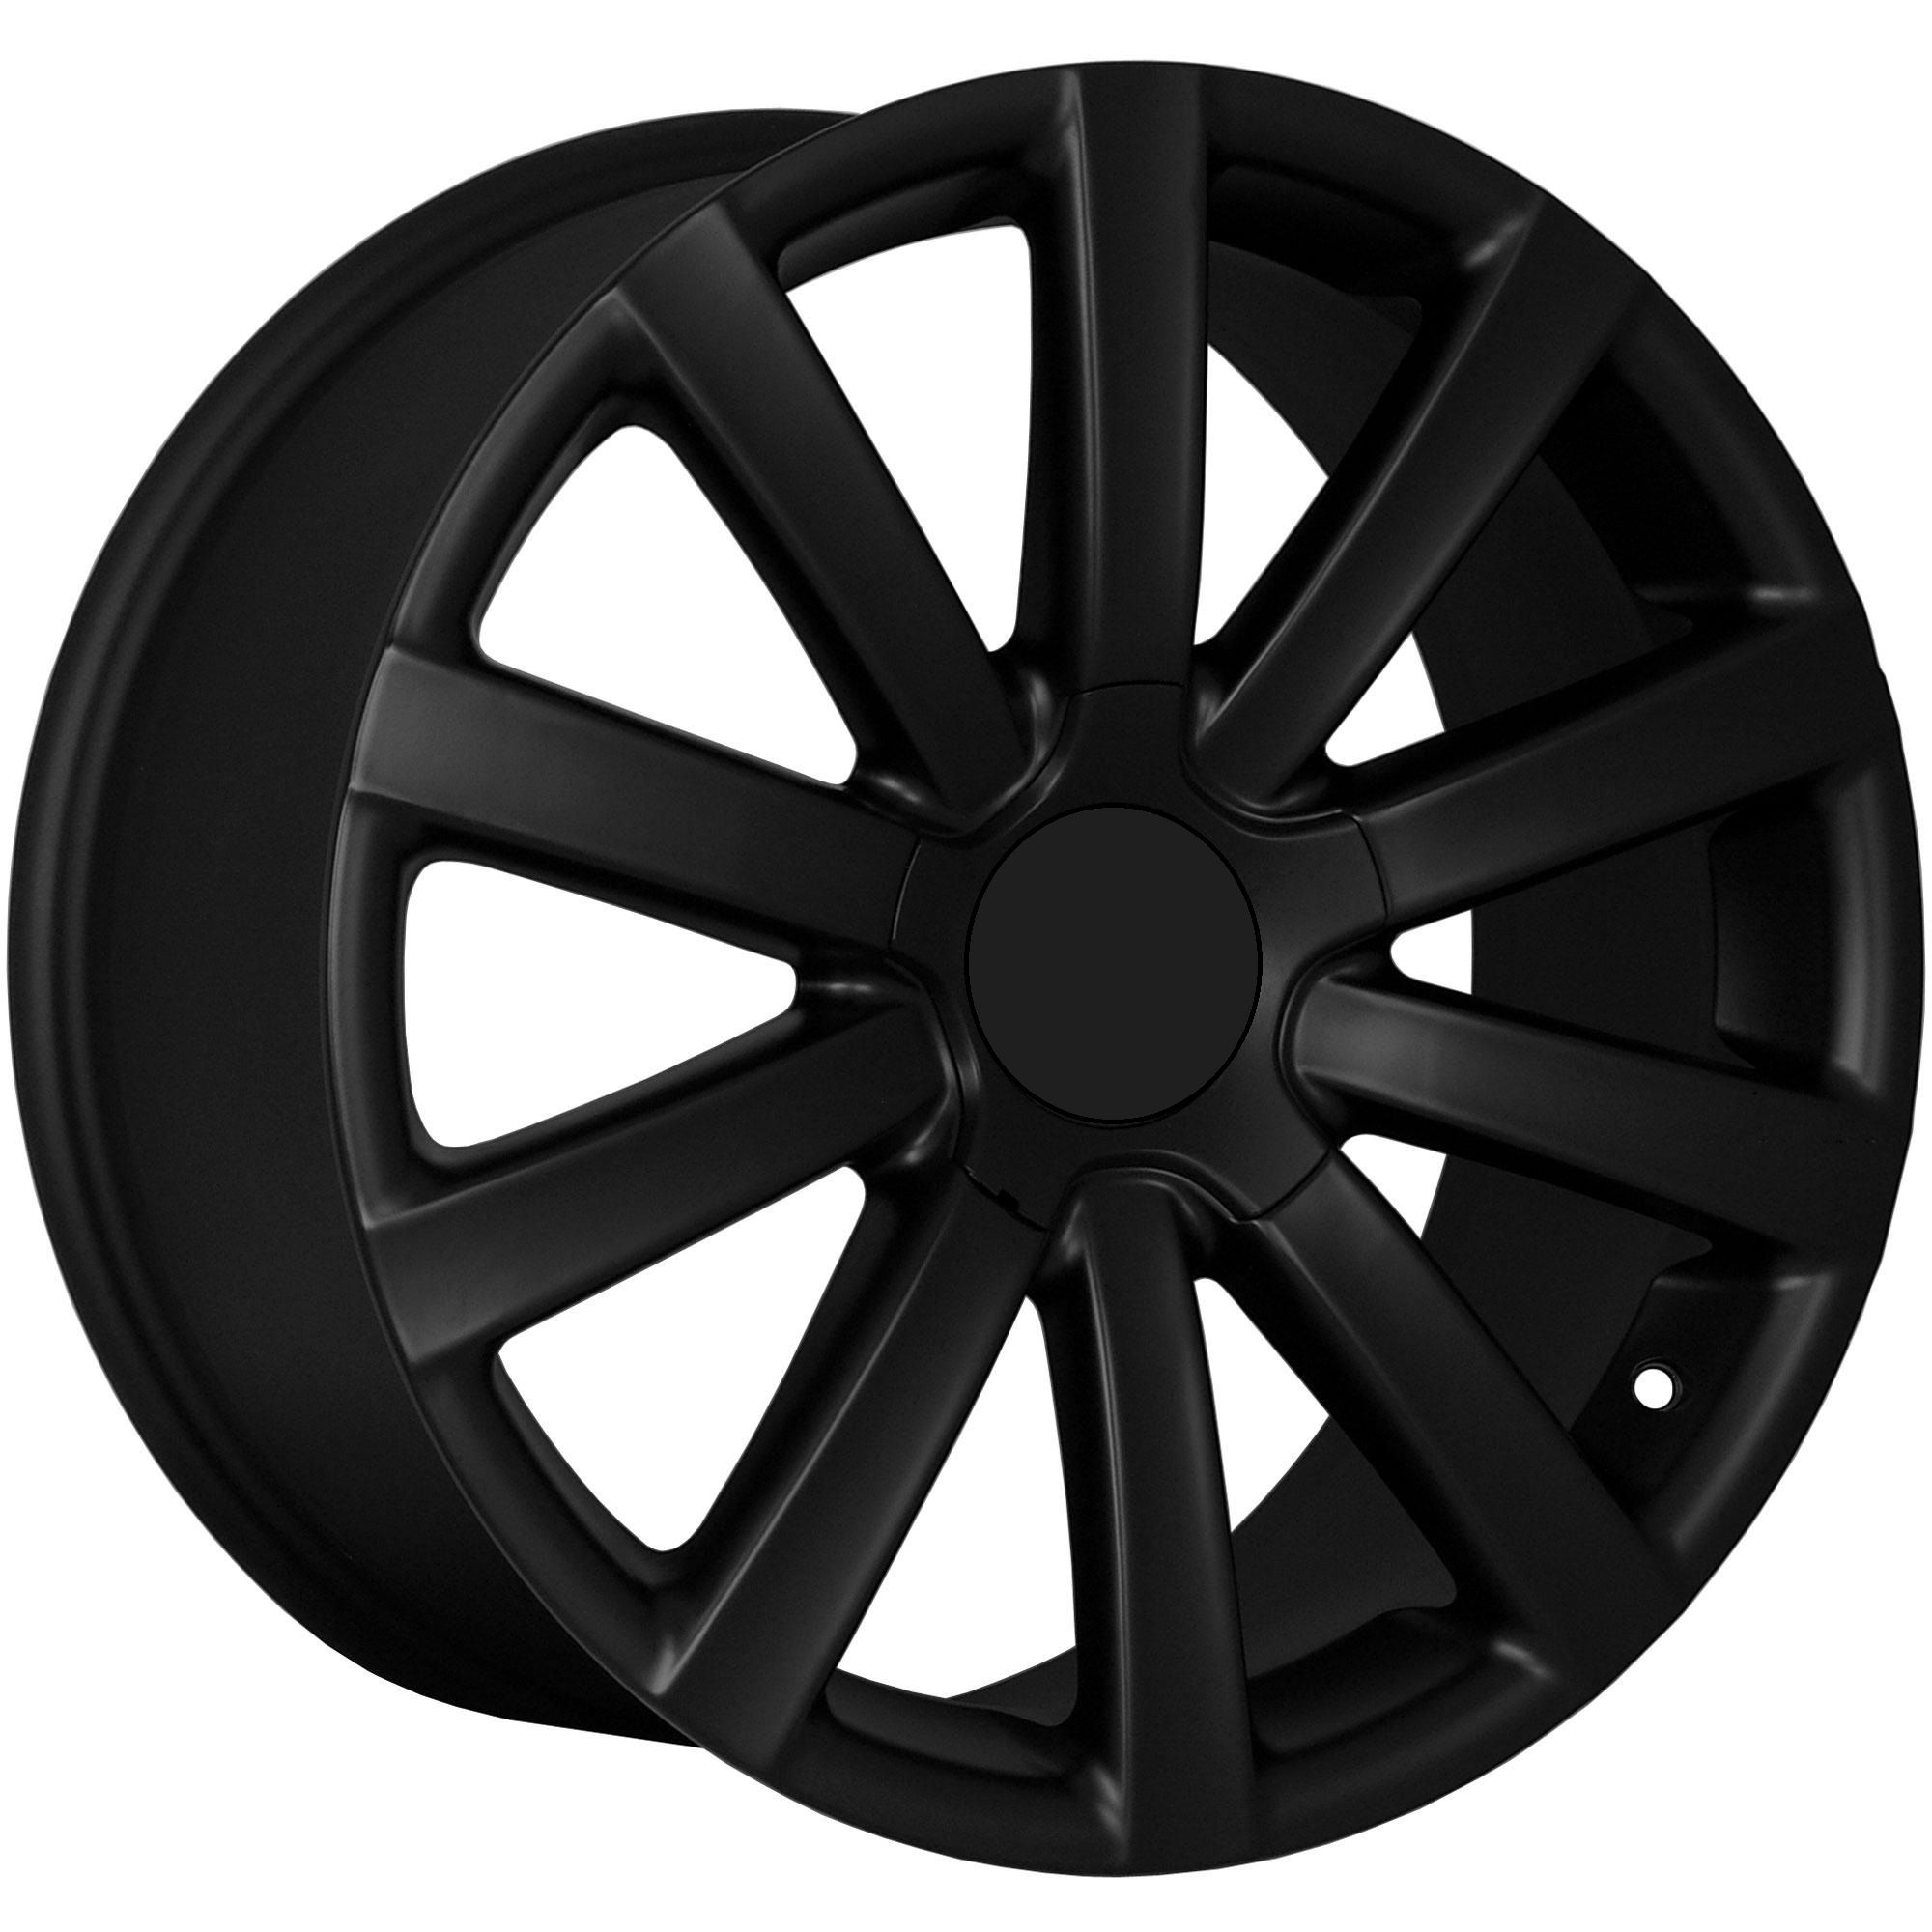 18 vw r32 matte black wheels rims fit vw jetta mkv mkvi. Black Bedroom Furniture Sets. Home Design Ideas